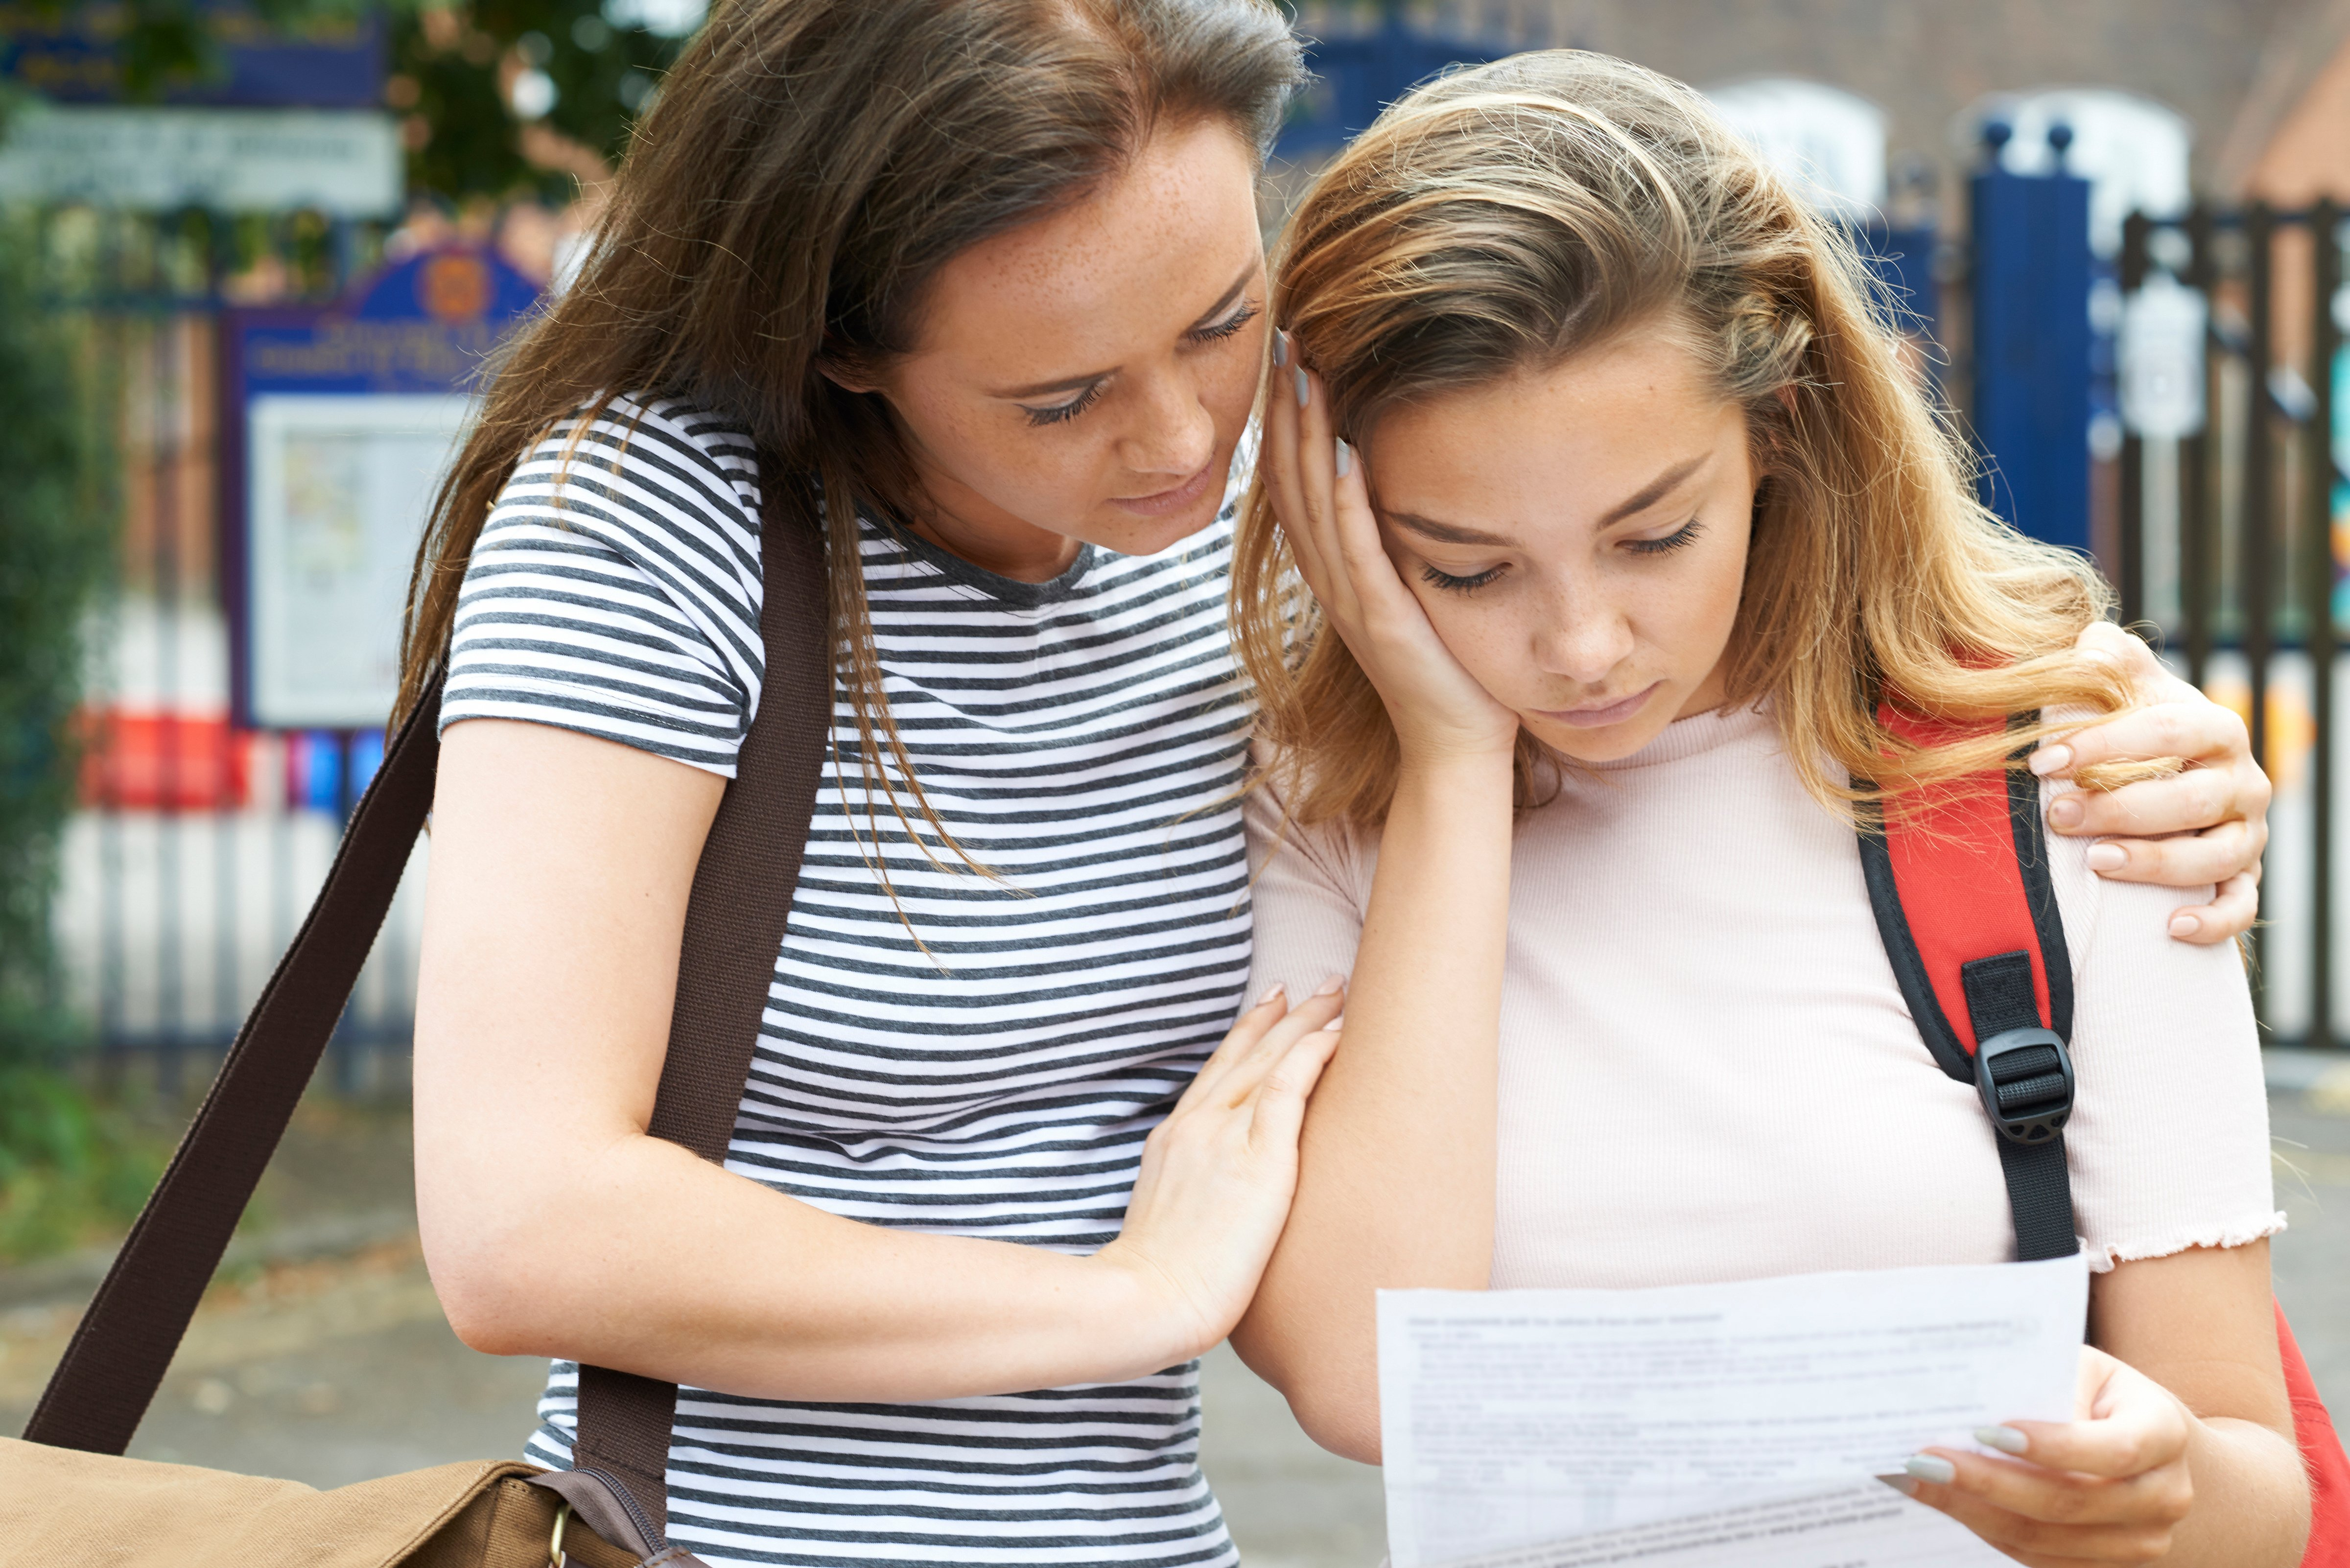 A woman comforts a girl who looks upset about school results by putting her arm around her